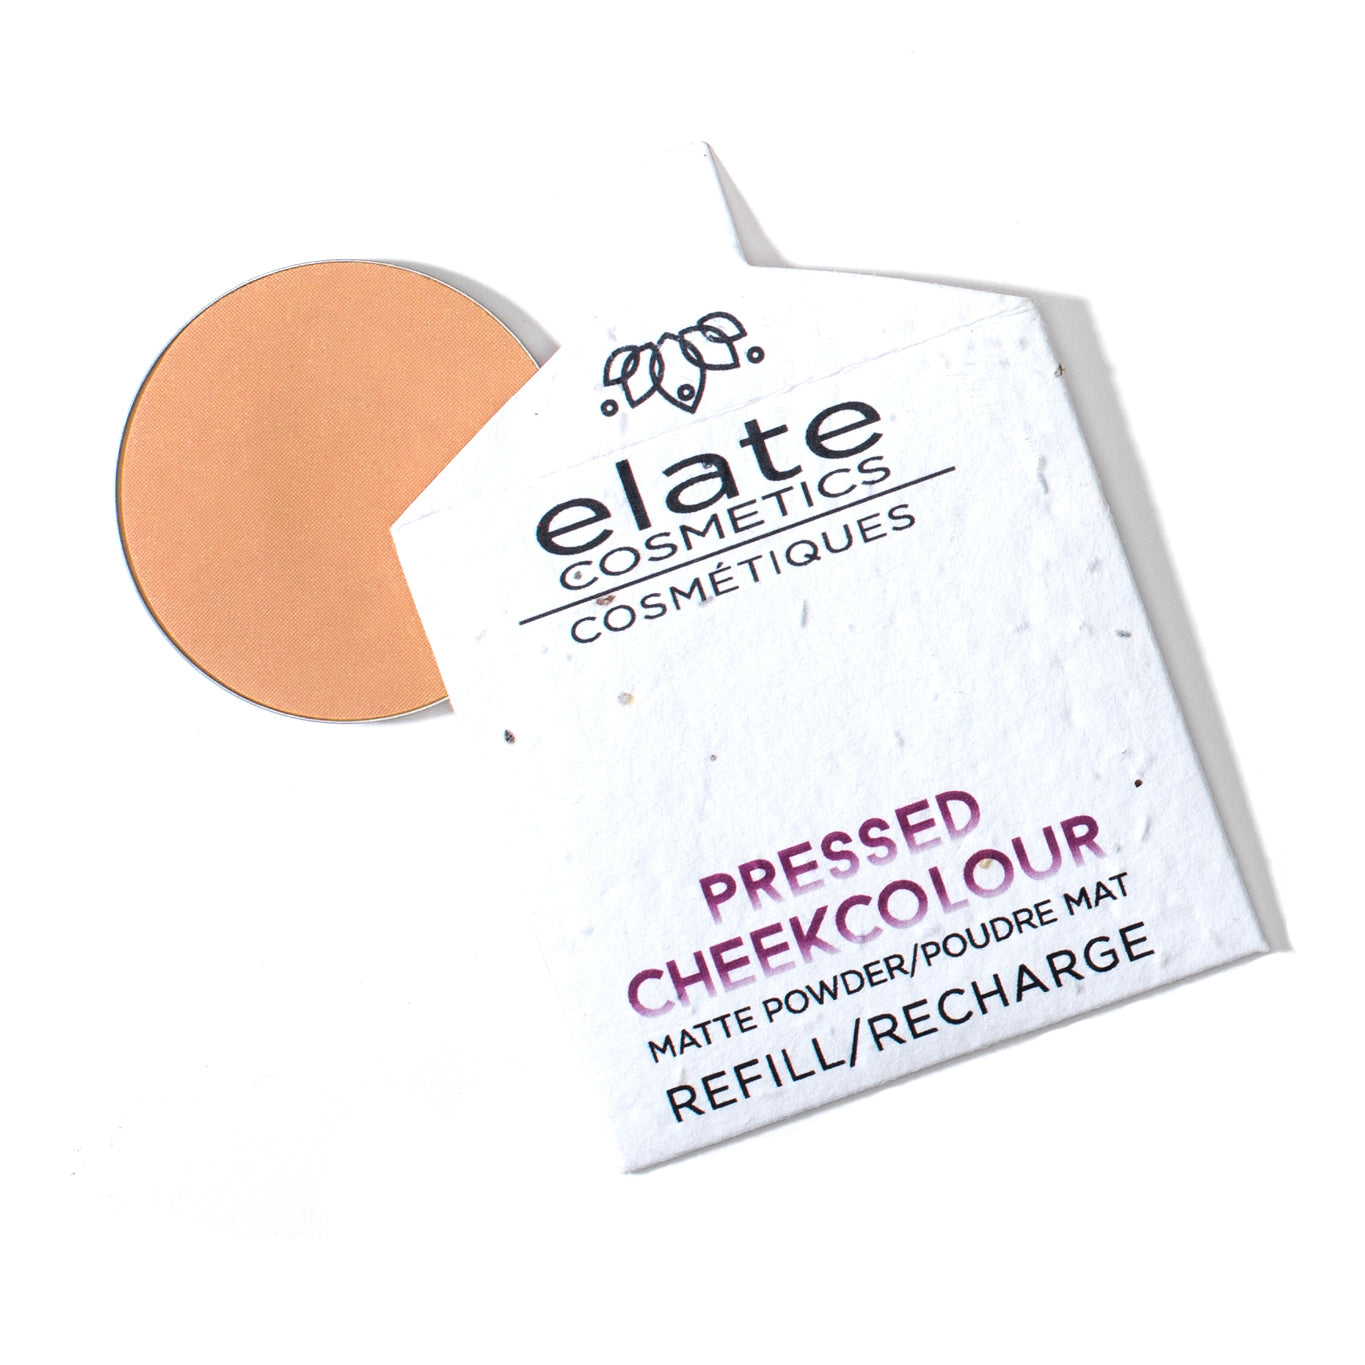 Pressed Cheek Colour - Sunbeam Bronzer